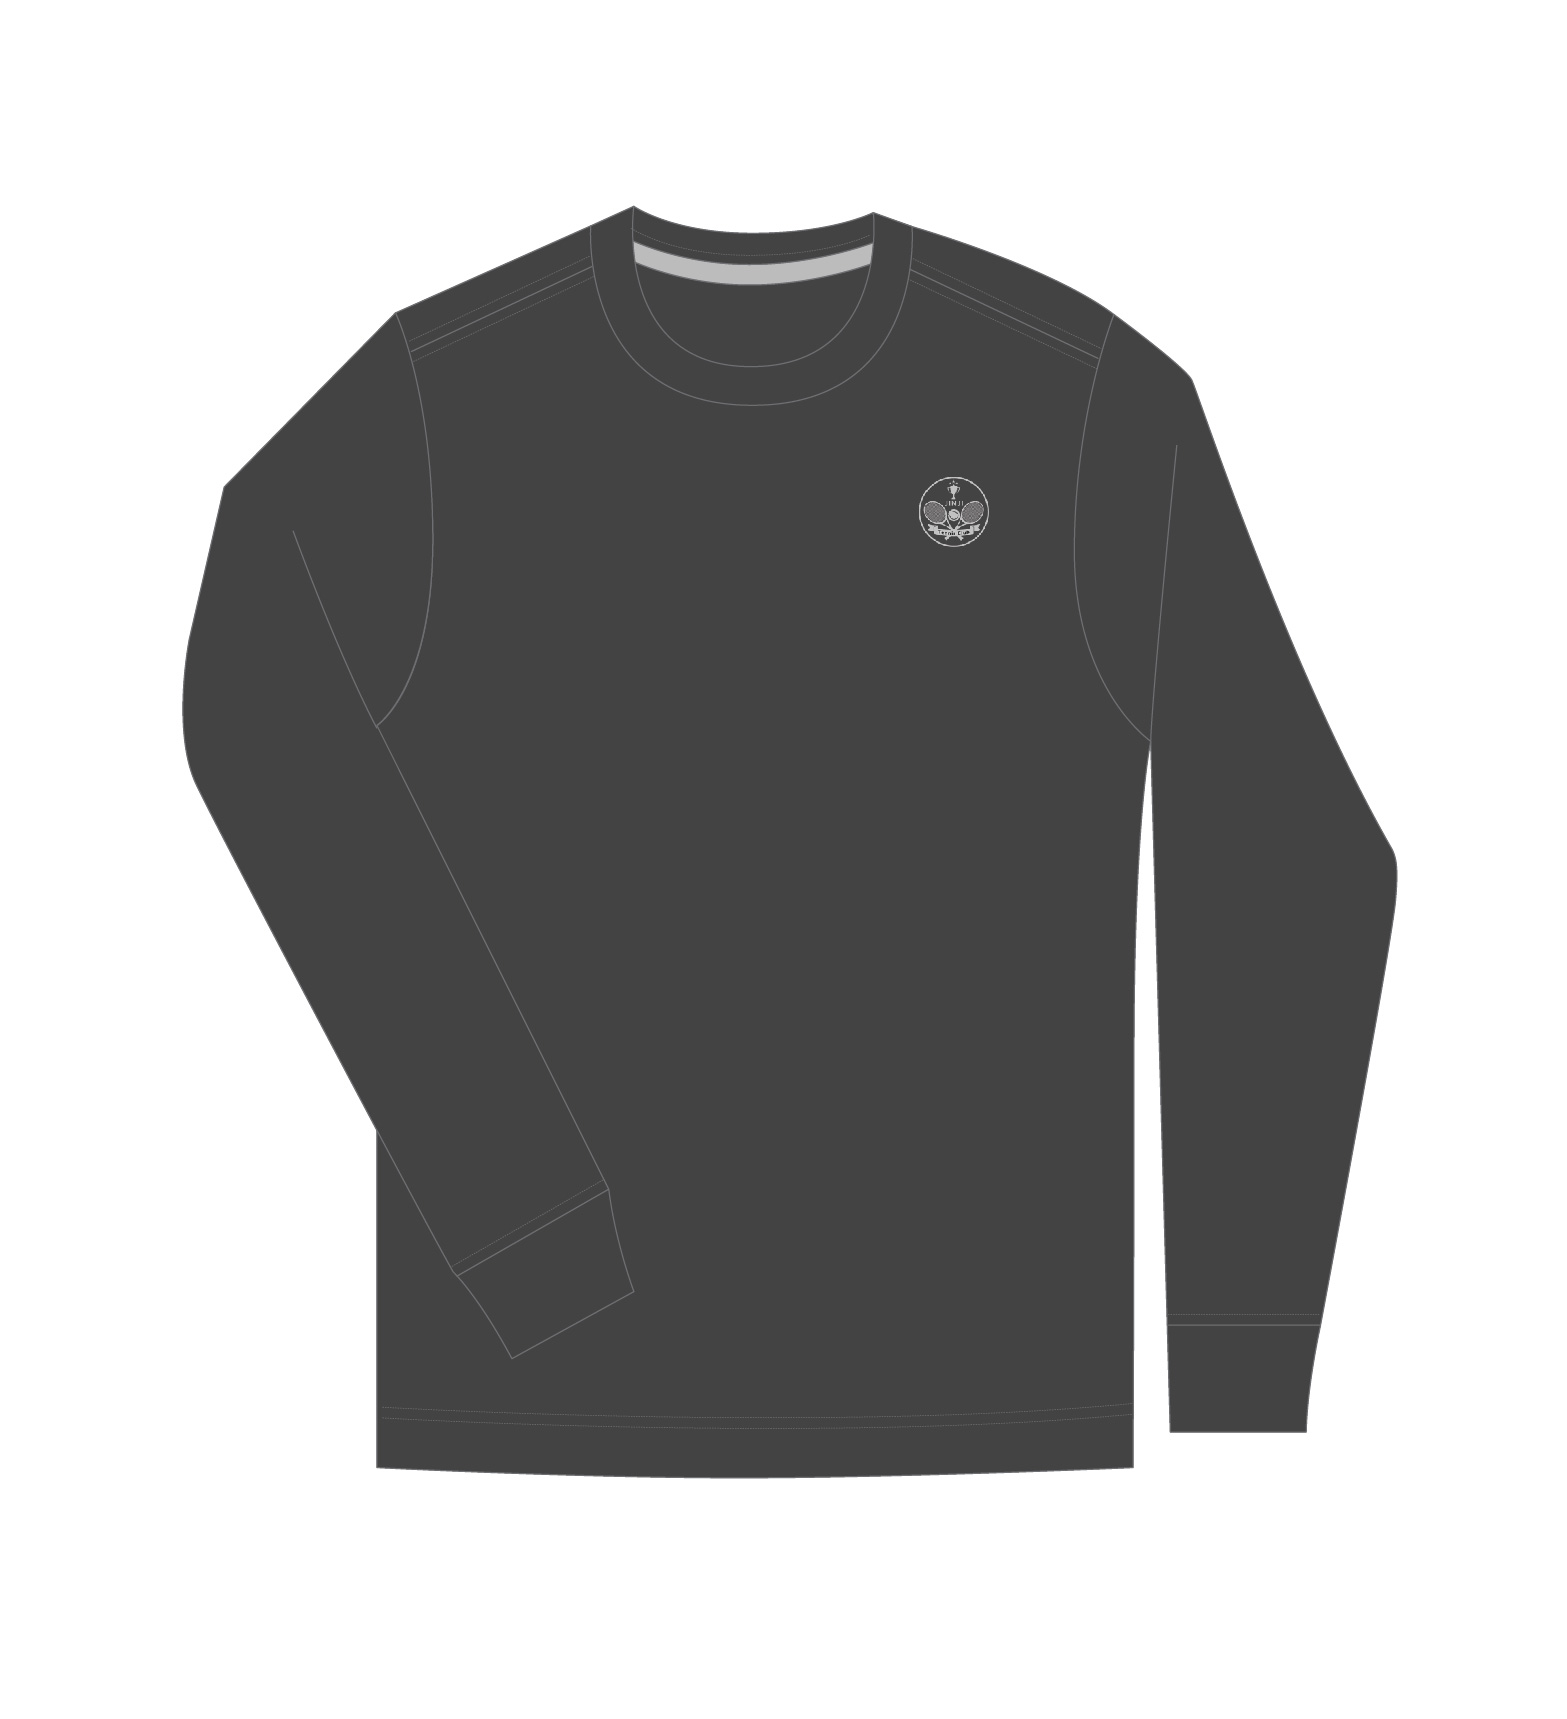 black sweat shirt sketch